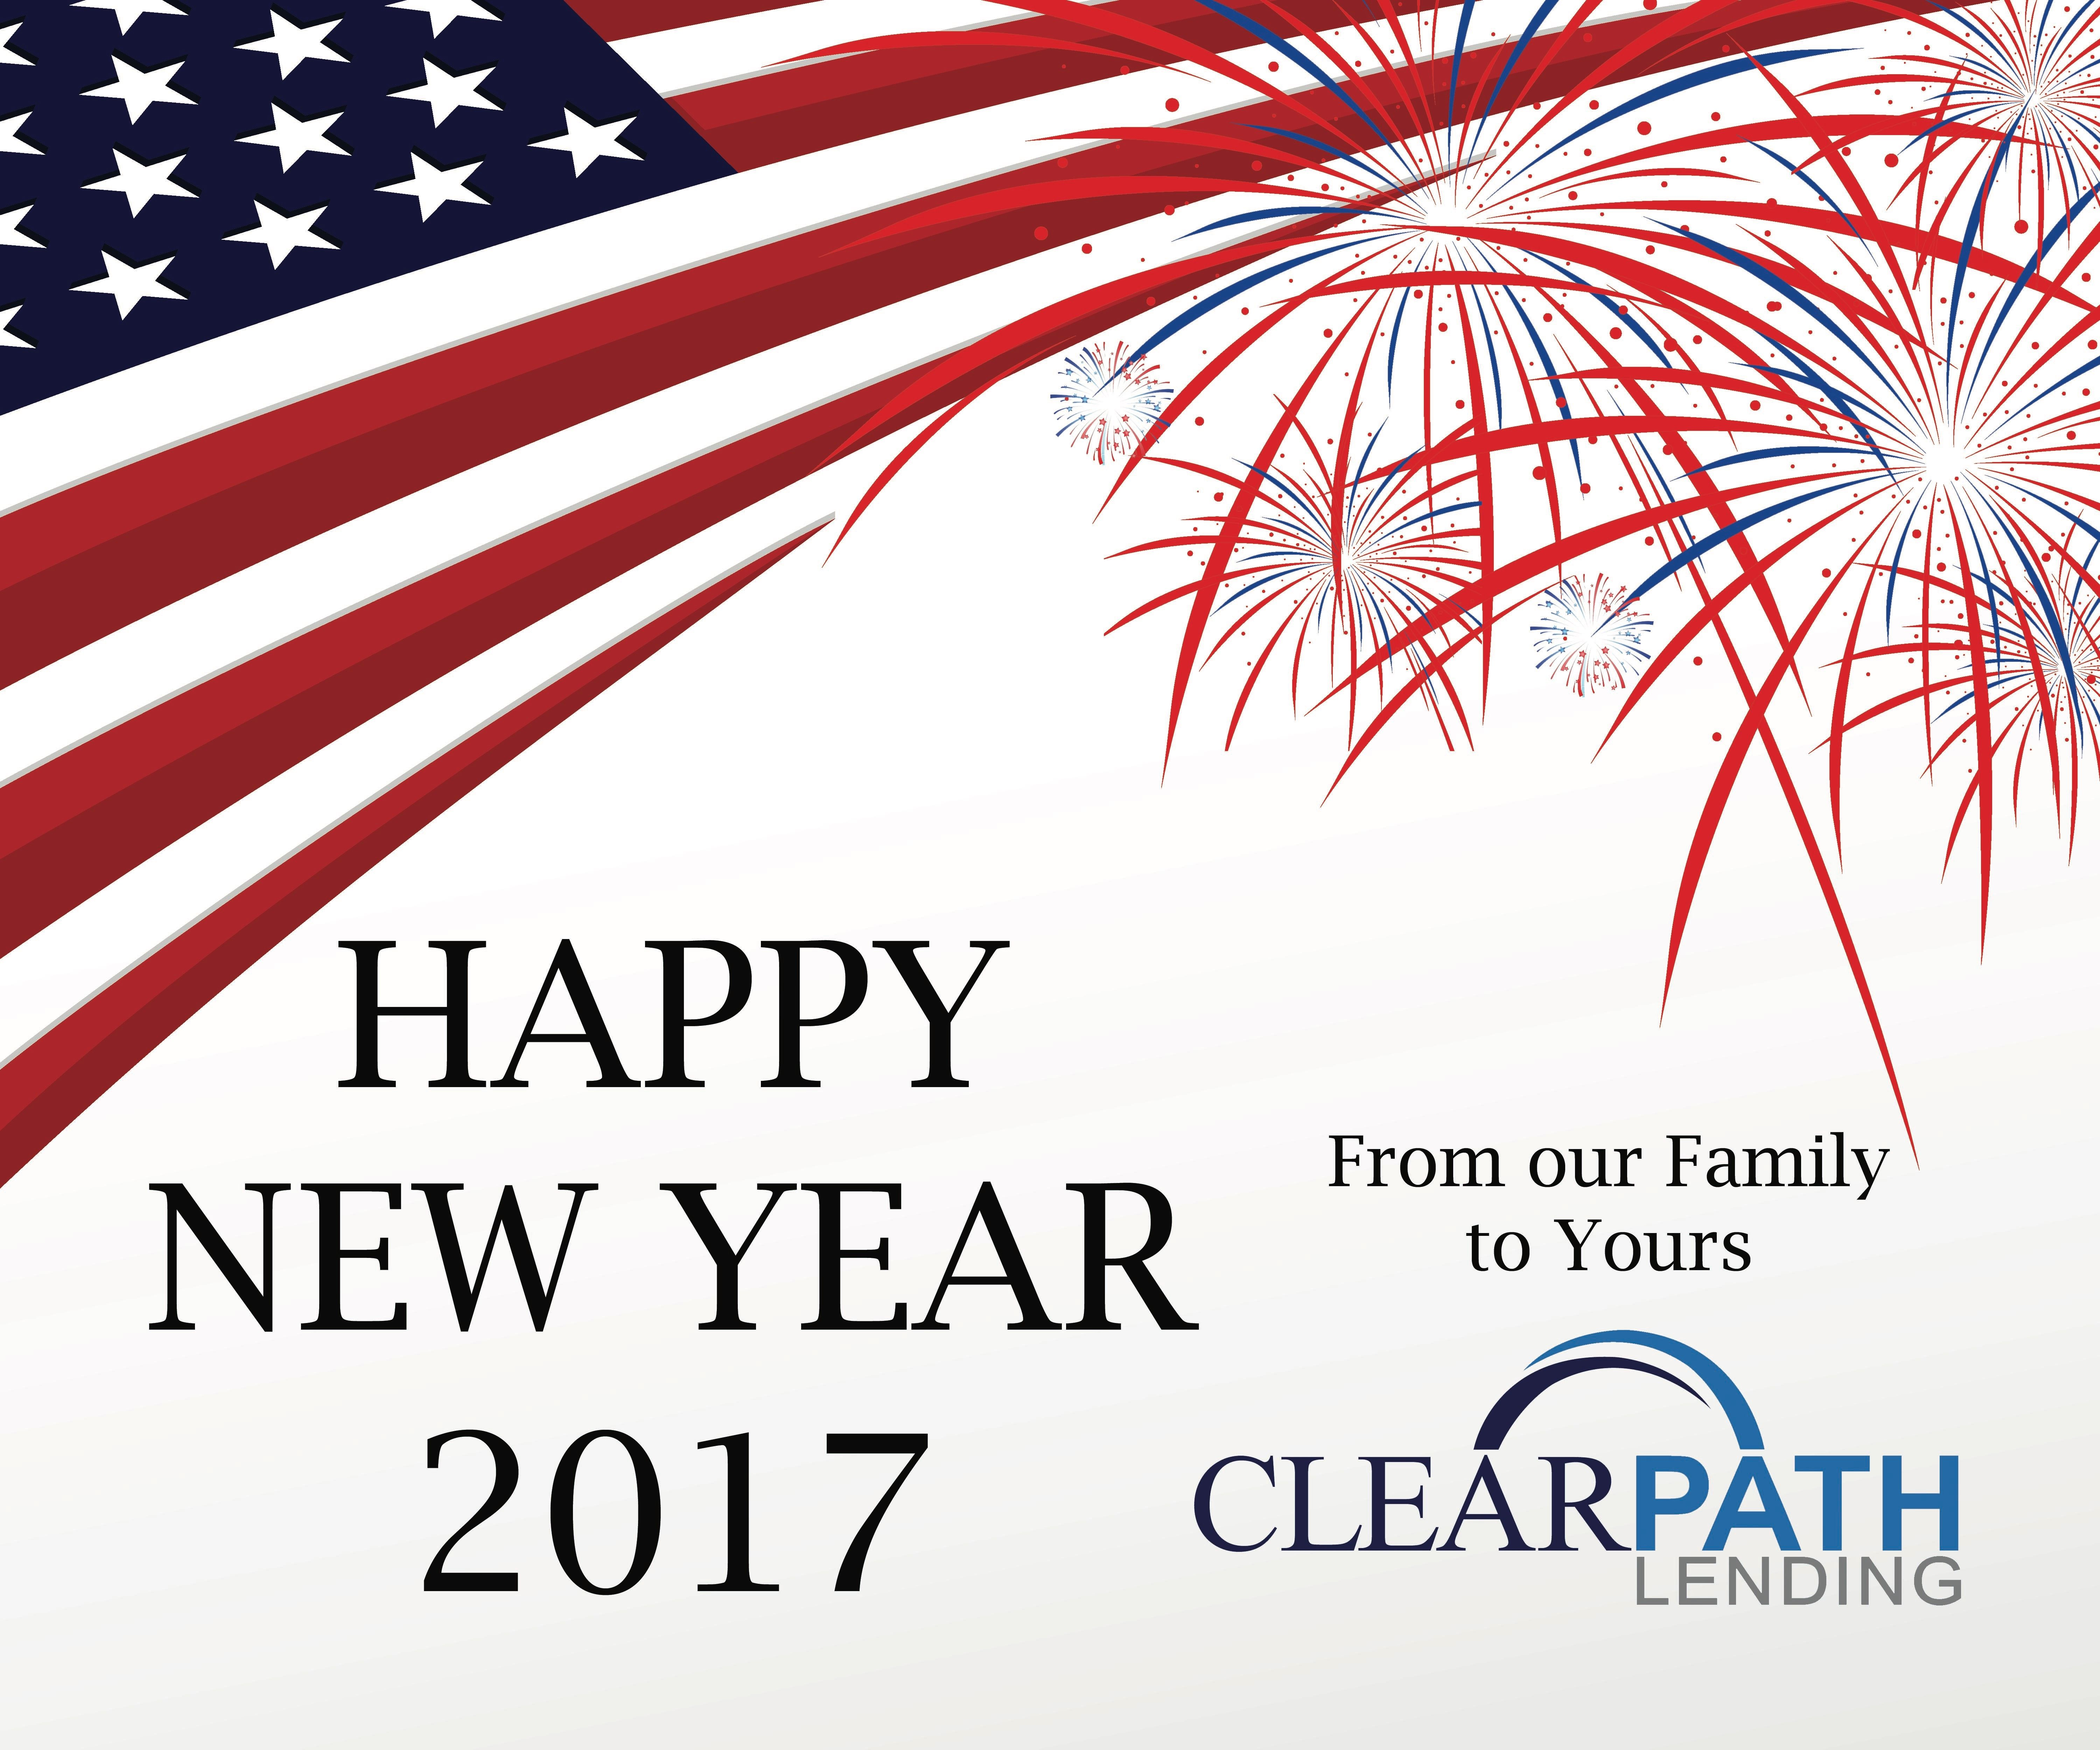 Happy New Year! We wish you all the best for the new year ahead. #happynewyear #clearpathlending #bringonthenewyear